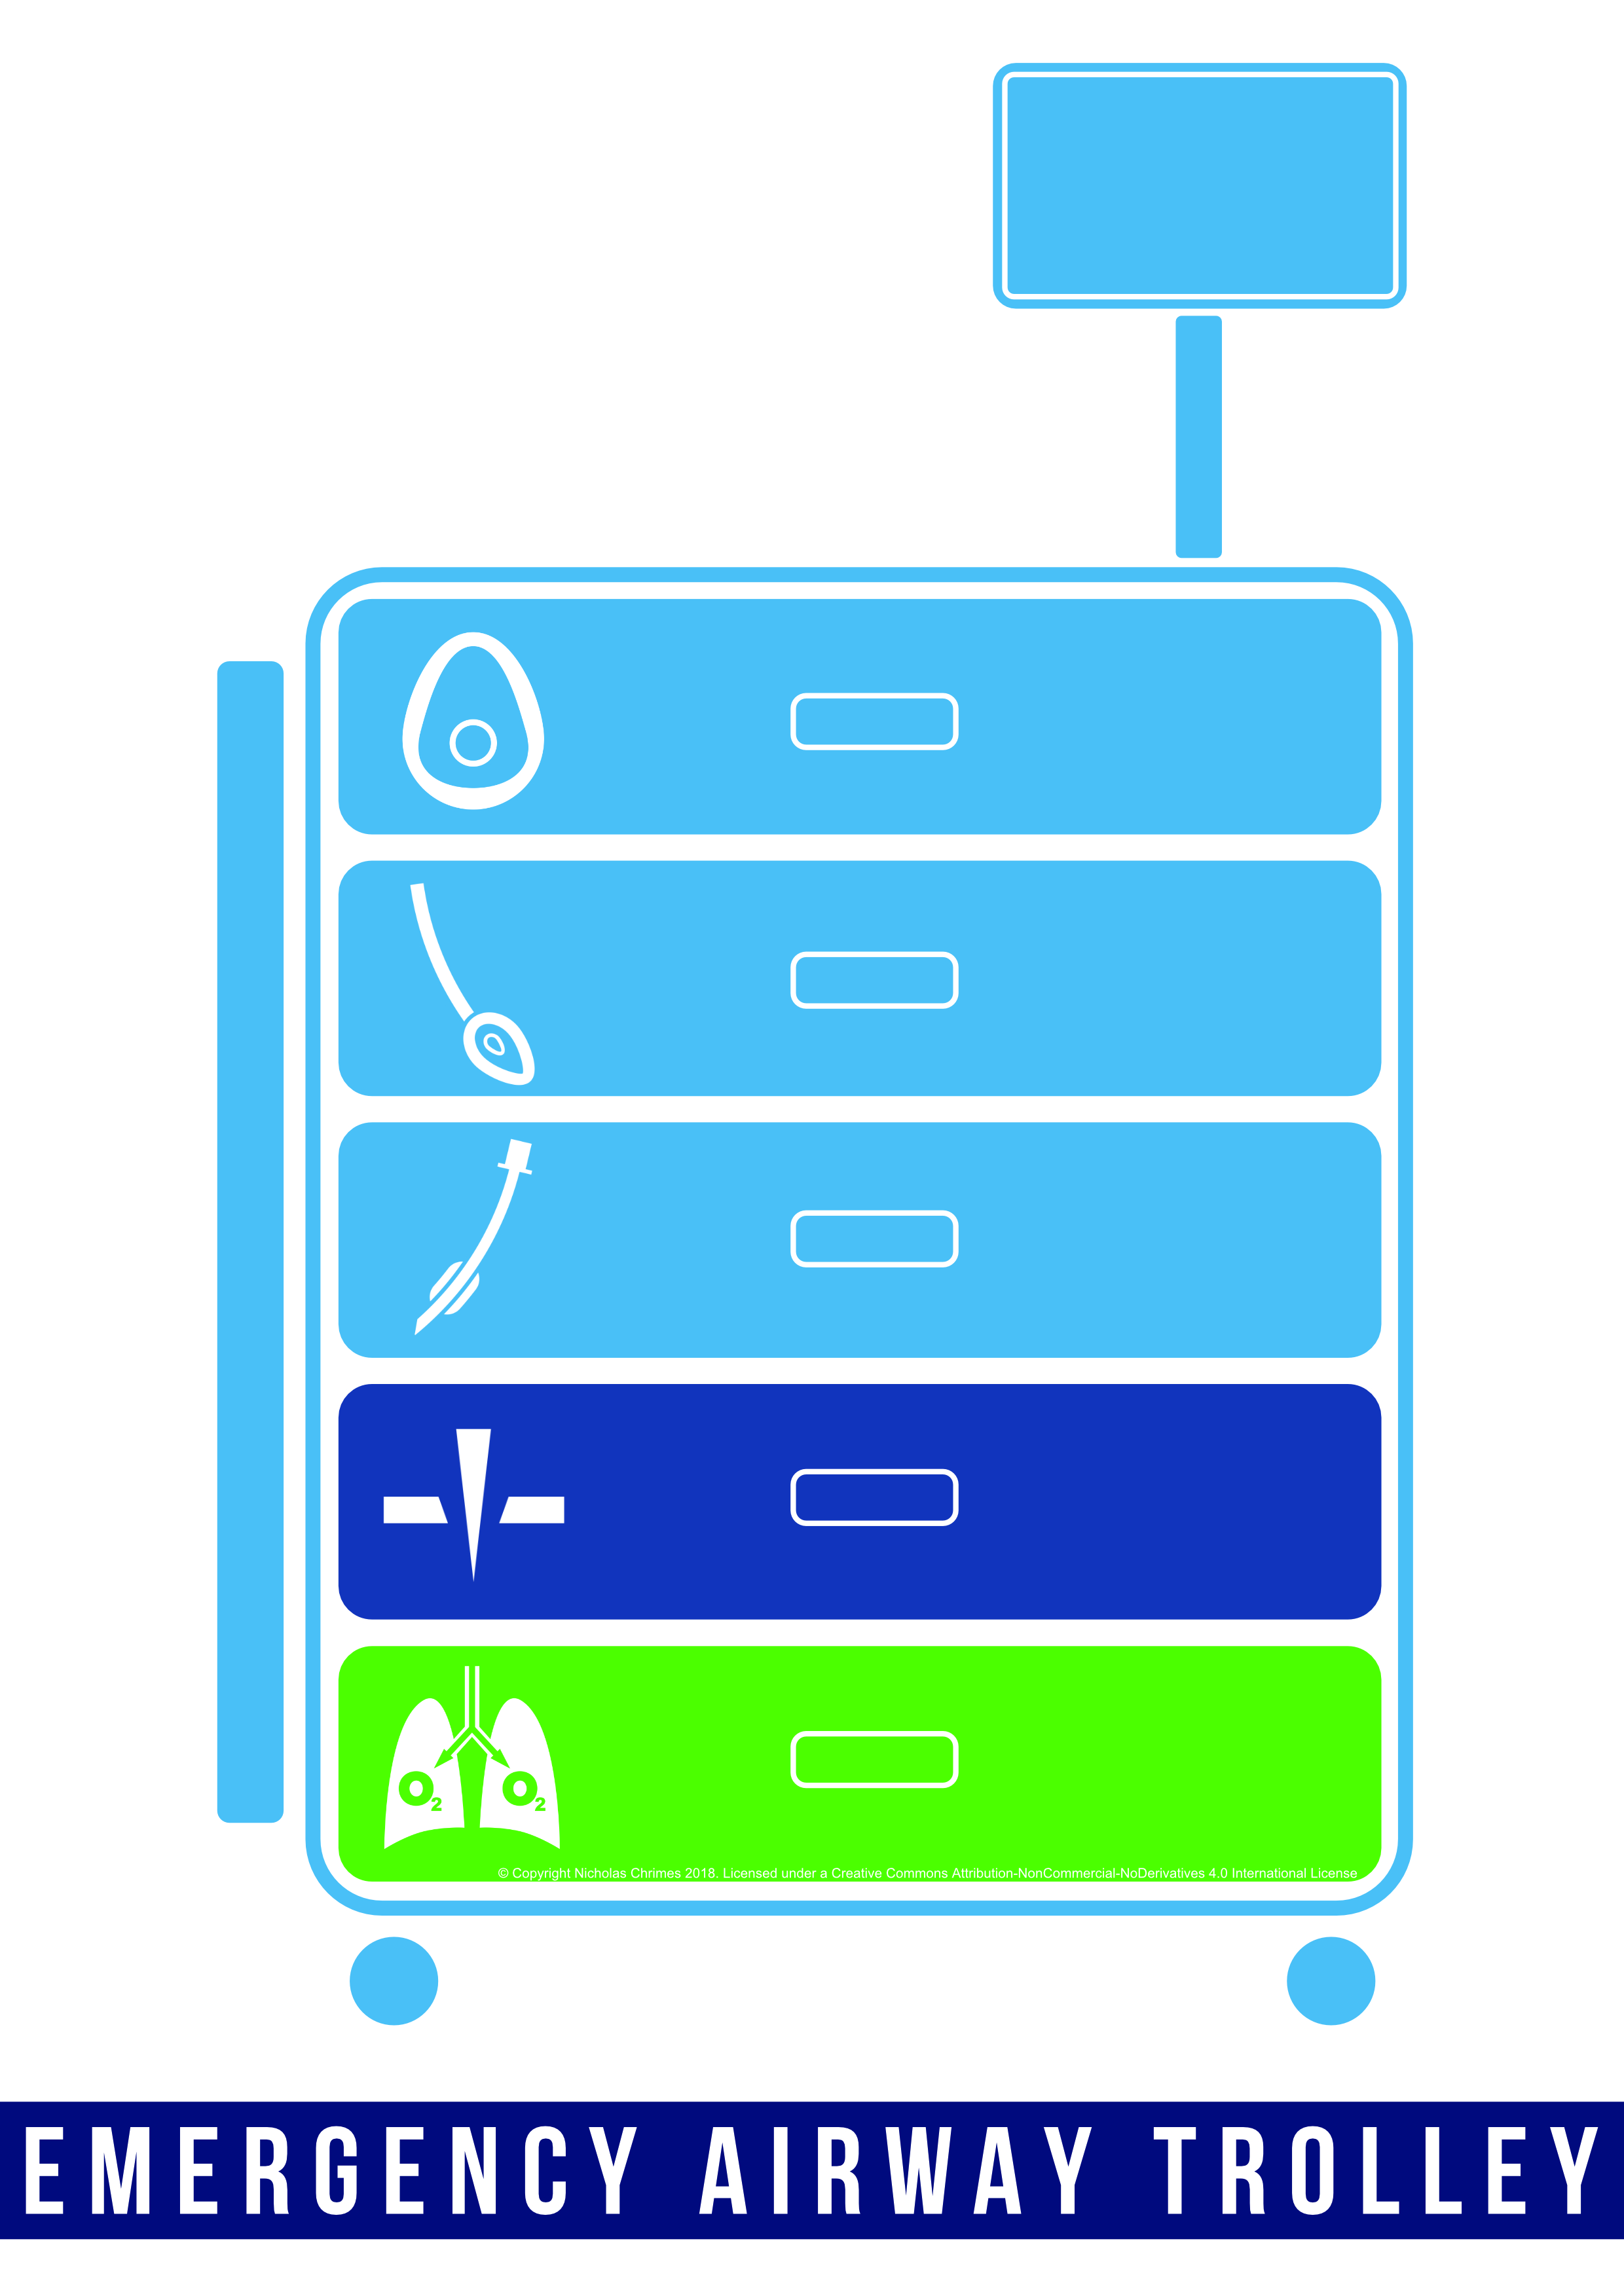 Emergency Airway Trolley Sign with Text